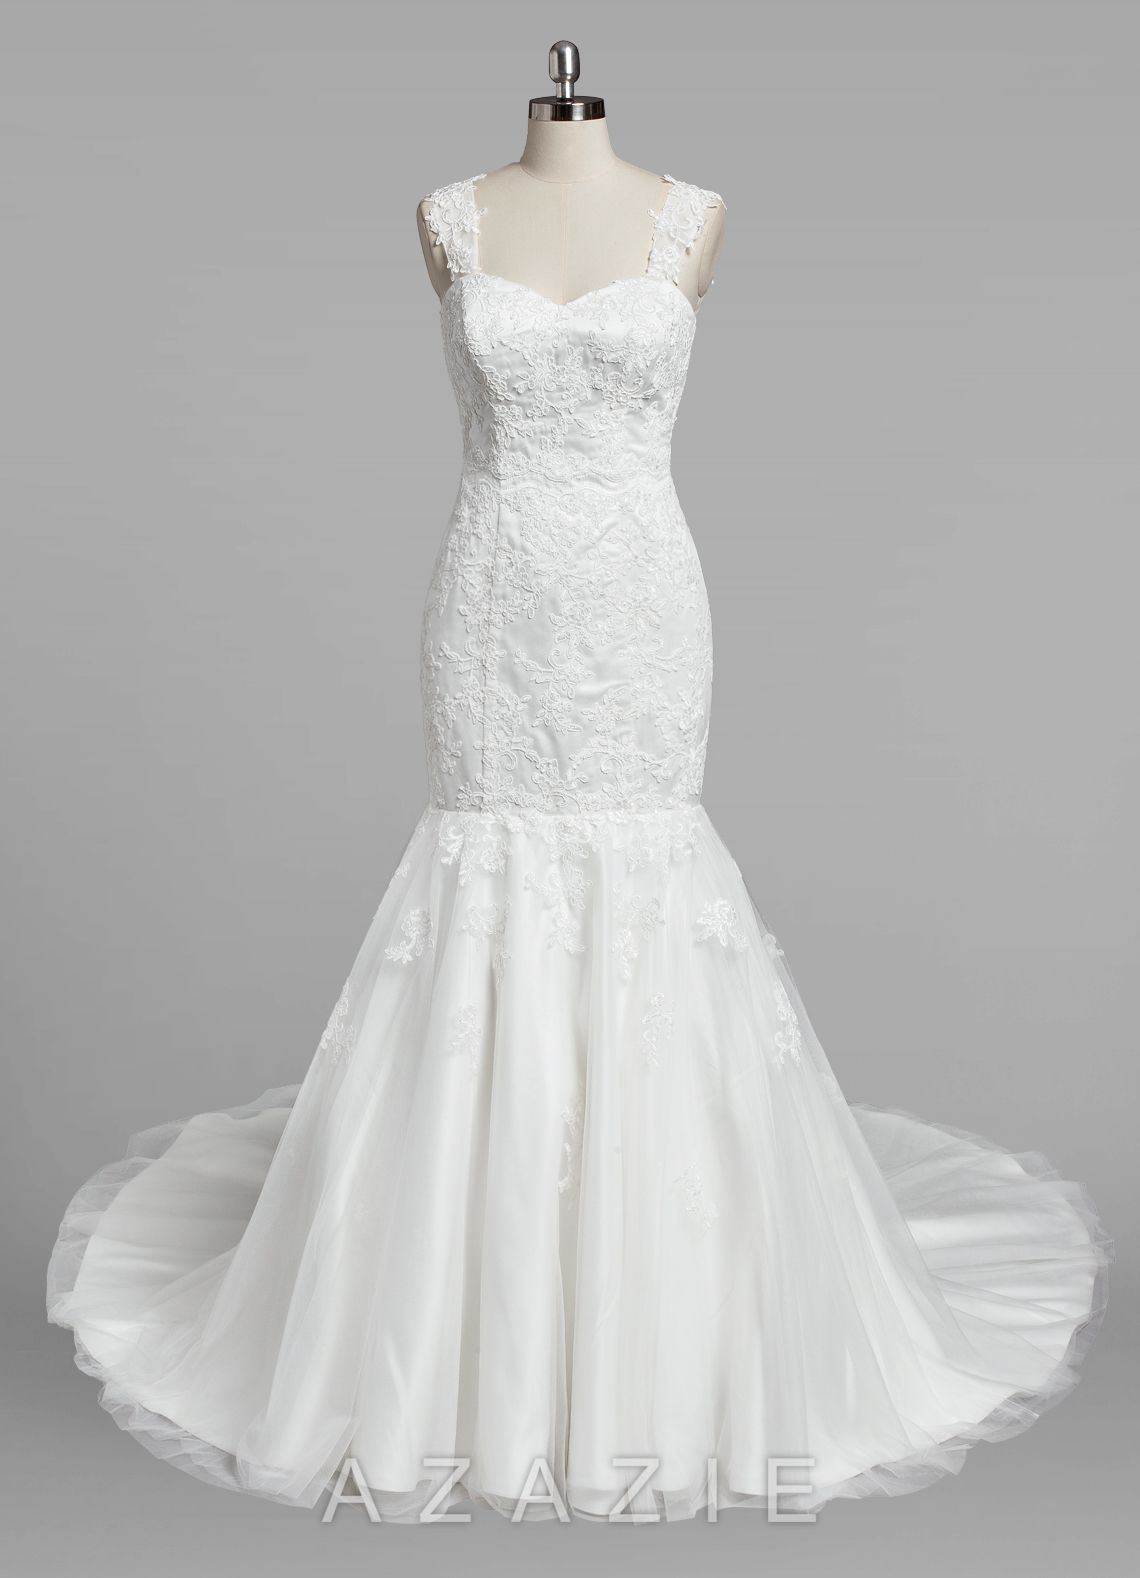 Wynn bg wedding dress bridal gowns chapel train and perfect wedding